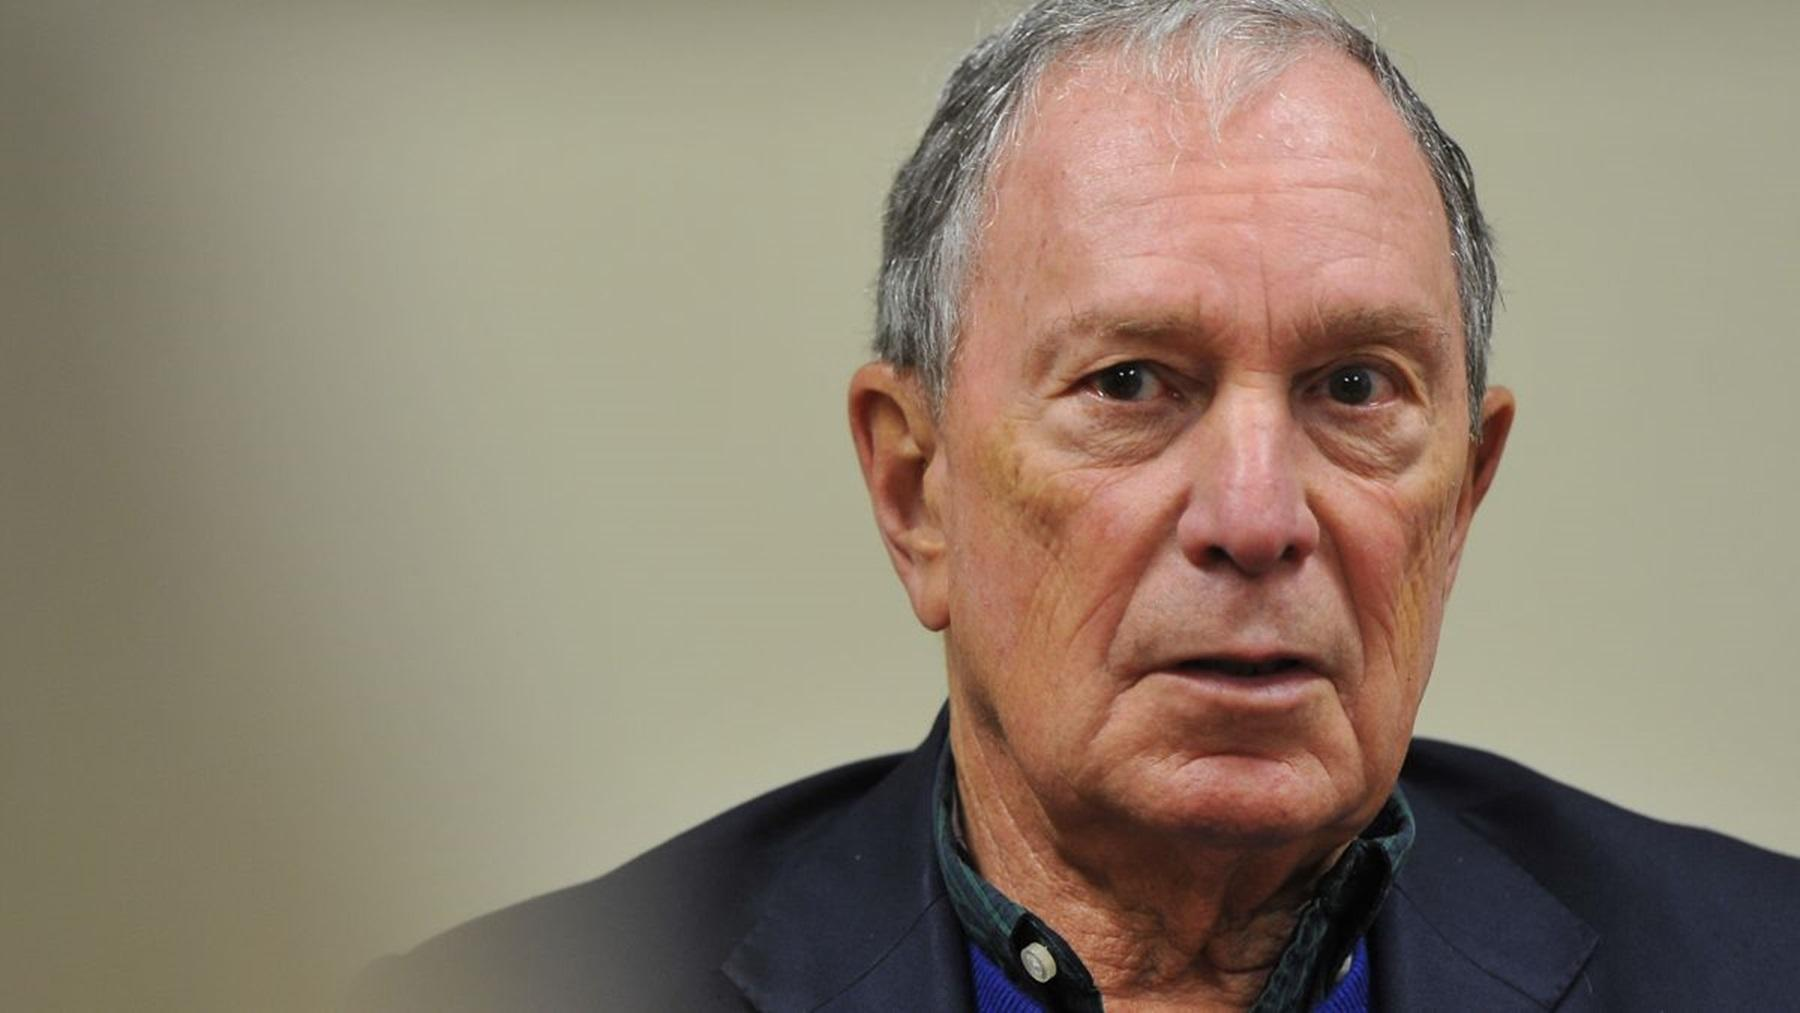 Michael Bloomberg Thinks He Can Beat Donald Trump And Is Planning To Run For President